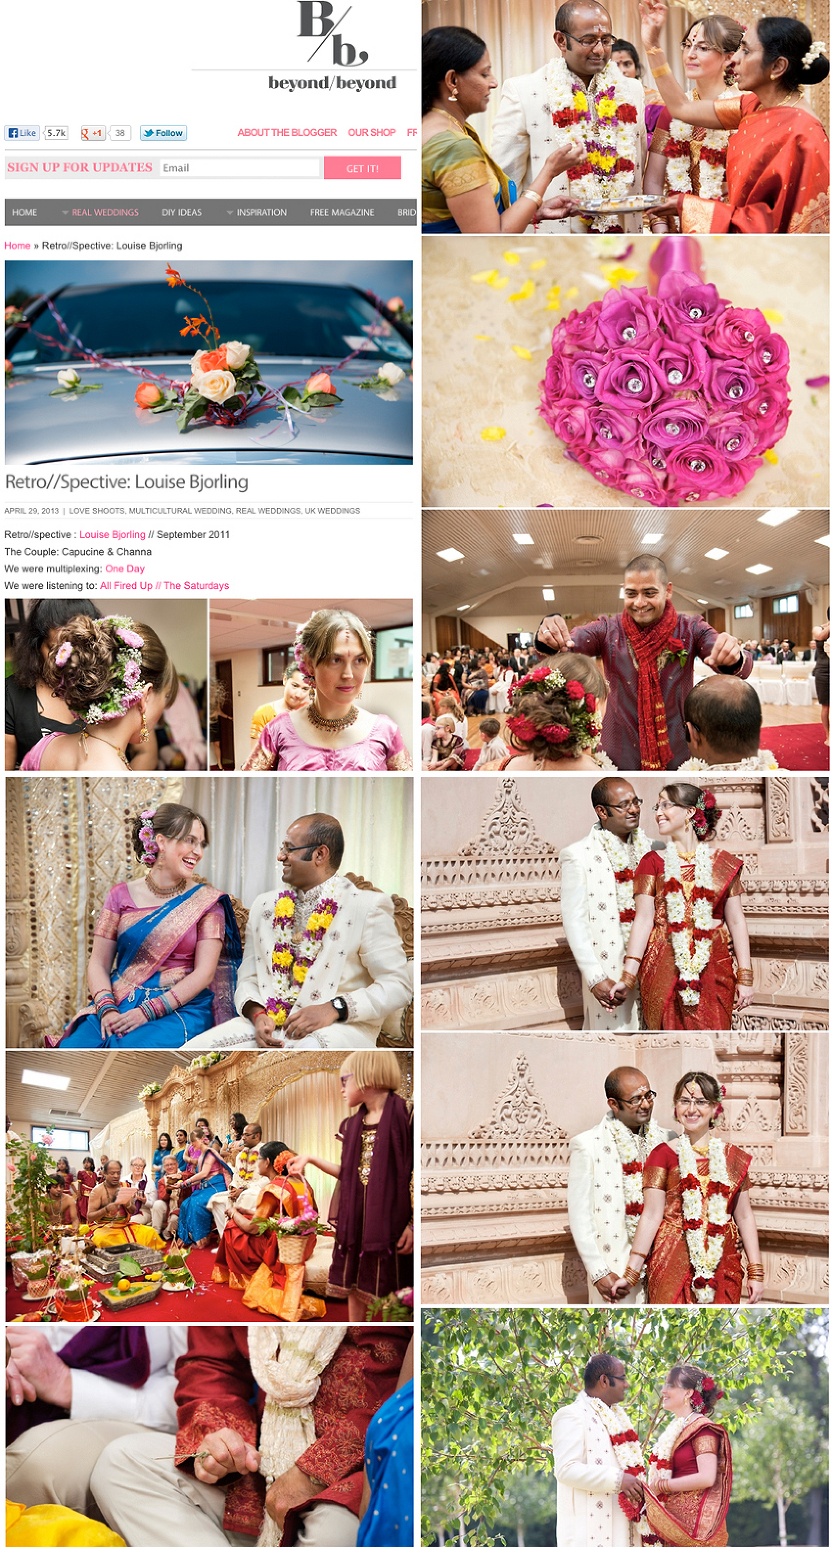 london-wedding-photography-multicultural, hindu-wedding-photography-london, multicultural-wedding-blog-london